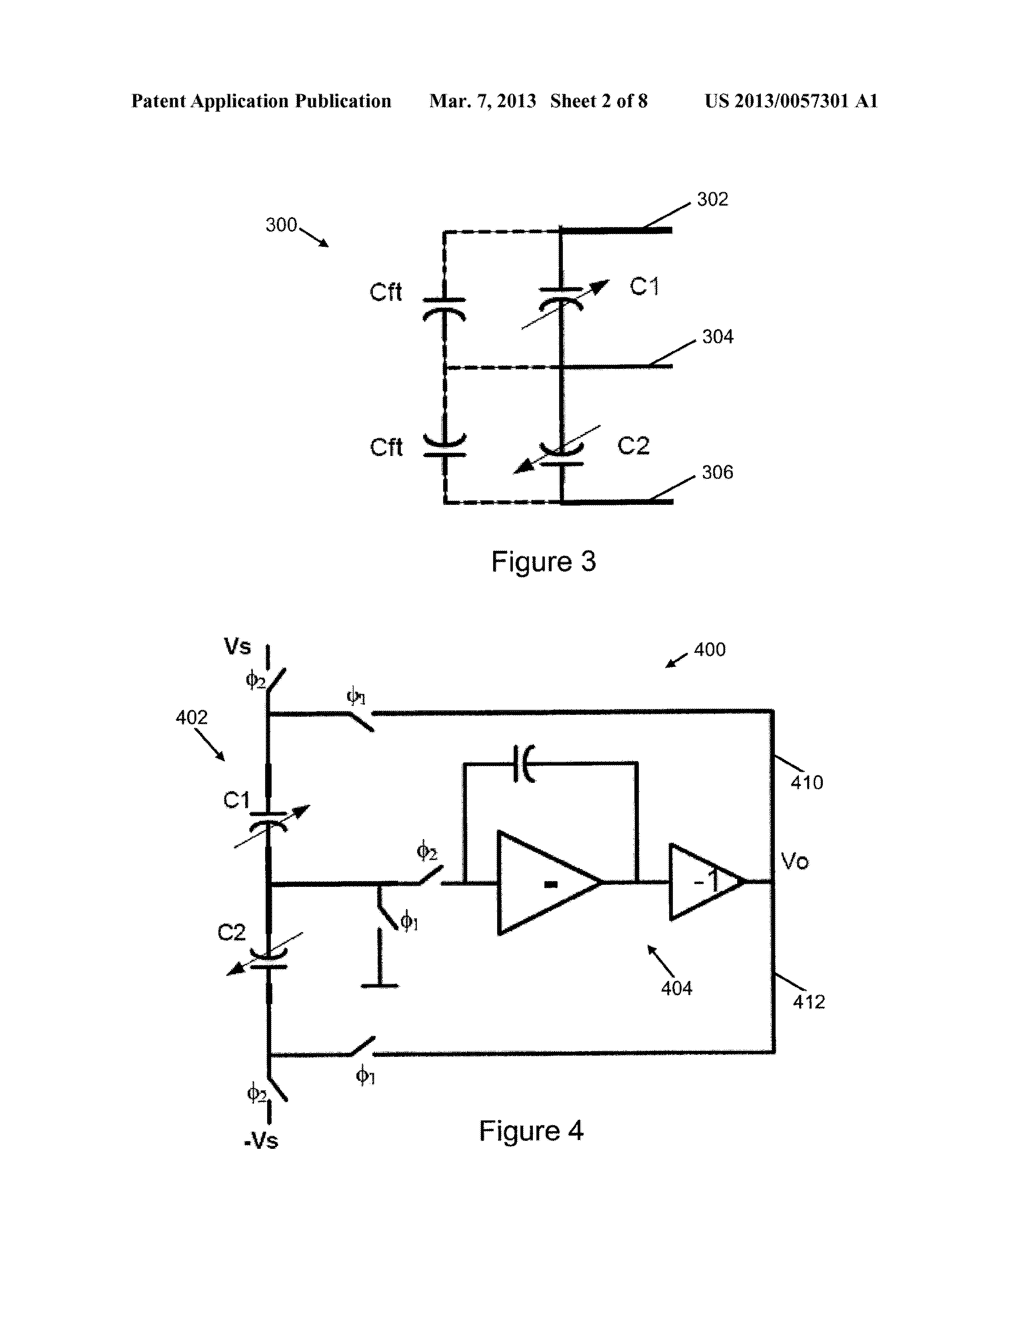 LINEAR CAPACITANCE-TO-VOLTAGE CONVERTER USING A SINGLE AMPLIFIER FOR     ACCELEROMETER FRONT ENDS WITH CANCELLATION OF SPURIOUS FORCES CONTRIBUTED     BY SENSOR CIRCUITRY - diagram, schematic, and image 03